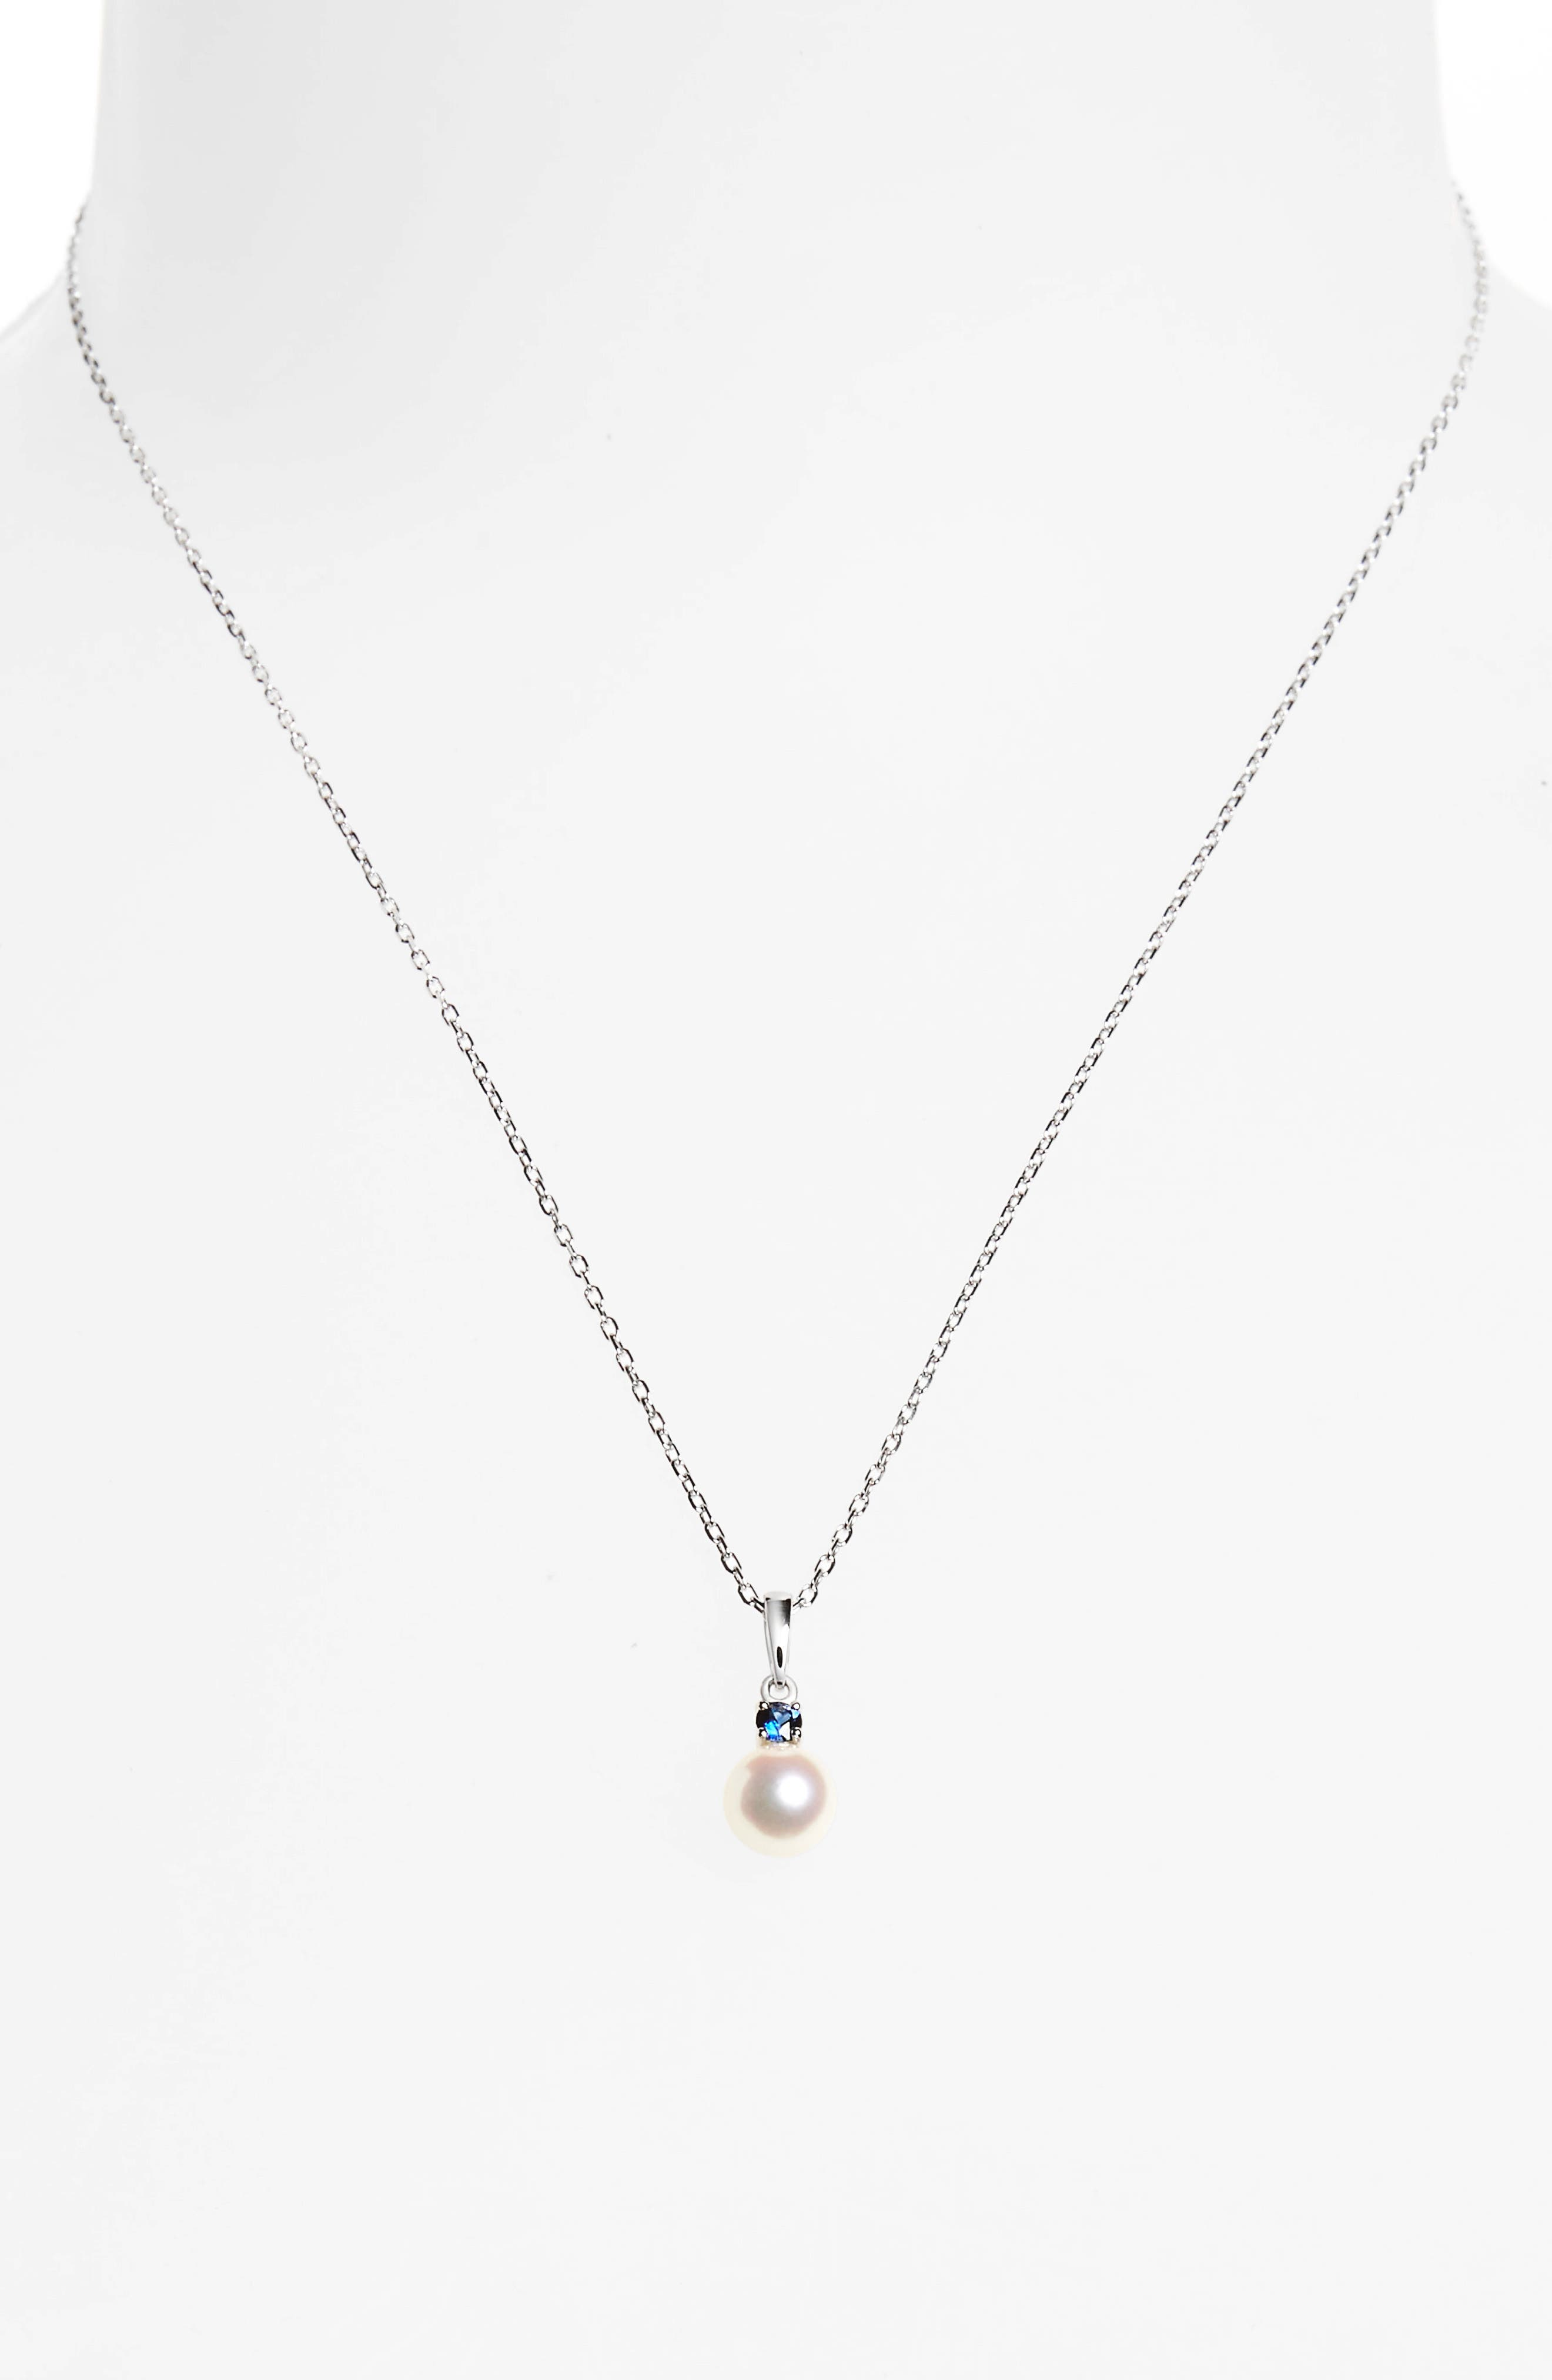 Akoya Cultured Pearl & Sapphire Pendant Necklace,                             Alternate thumbnail 2, color,                             711